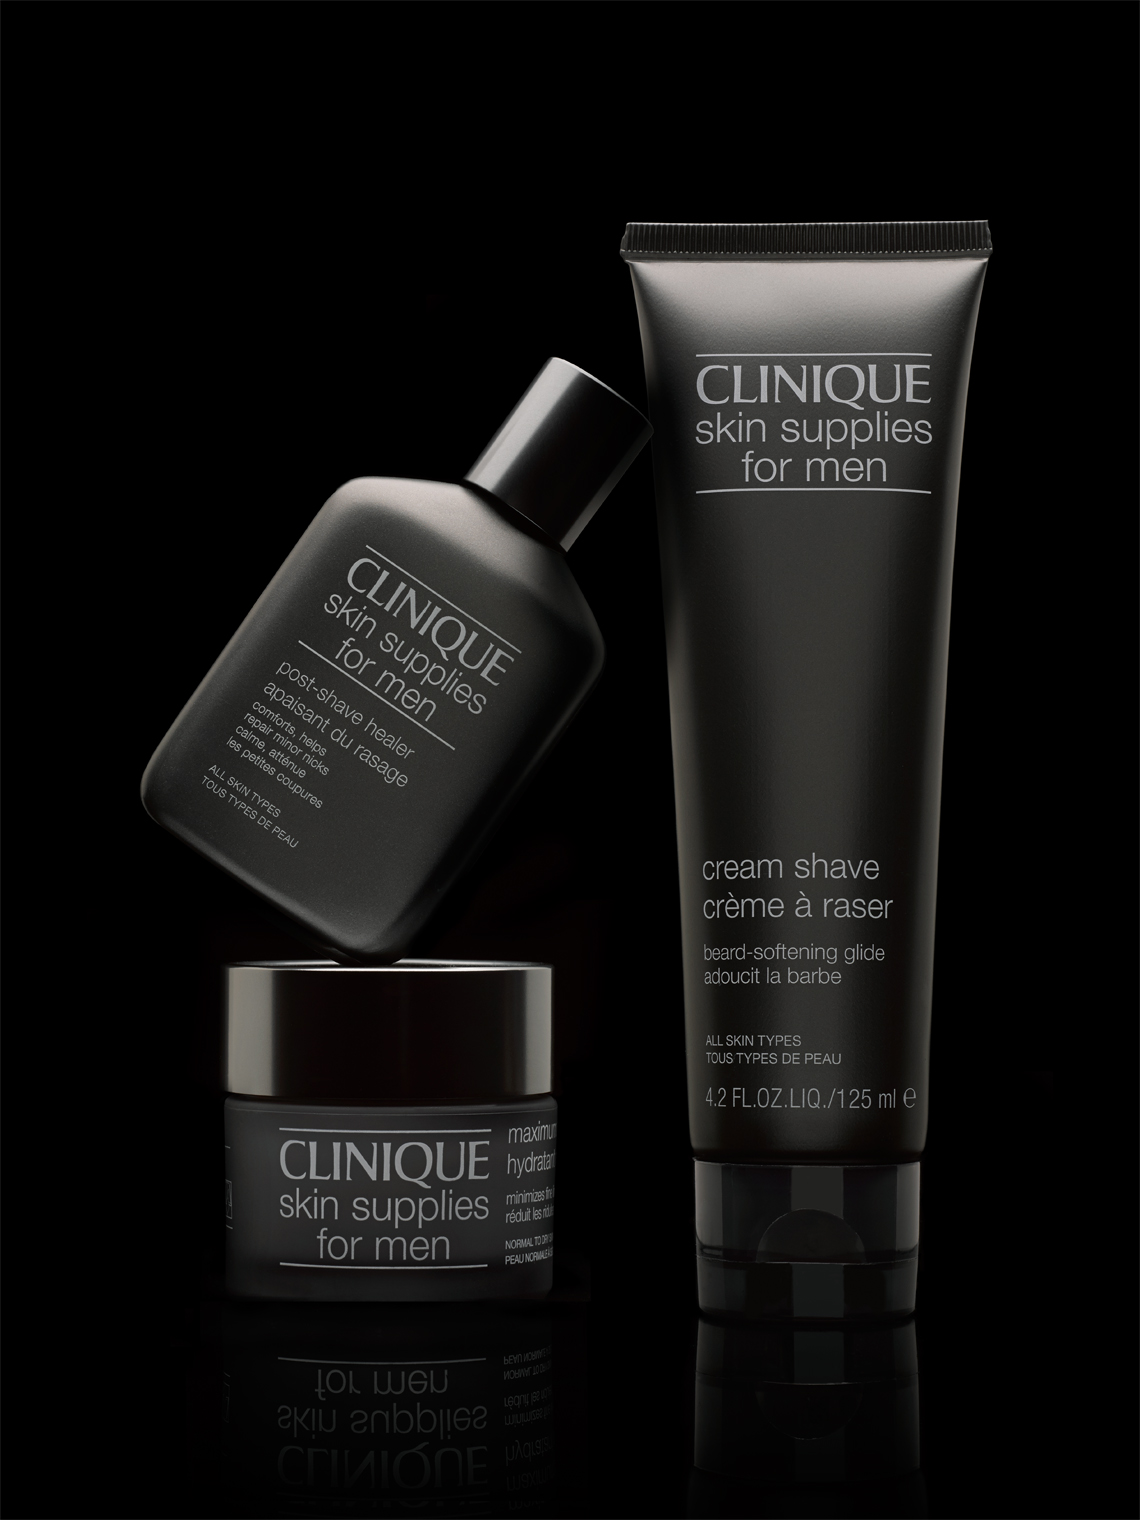 Clinique for men - San Francisco product photographer